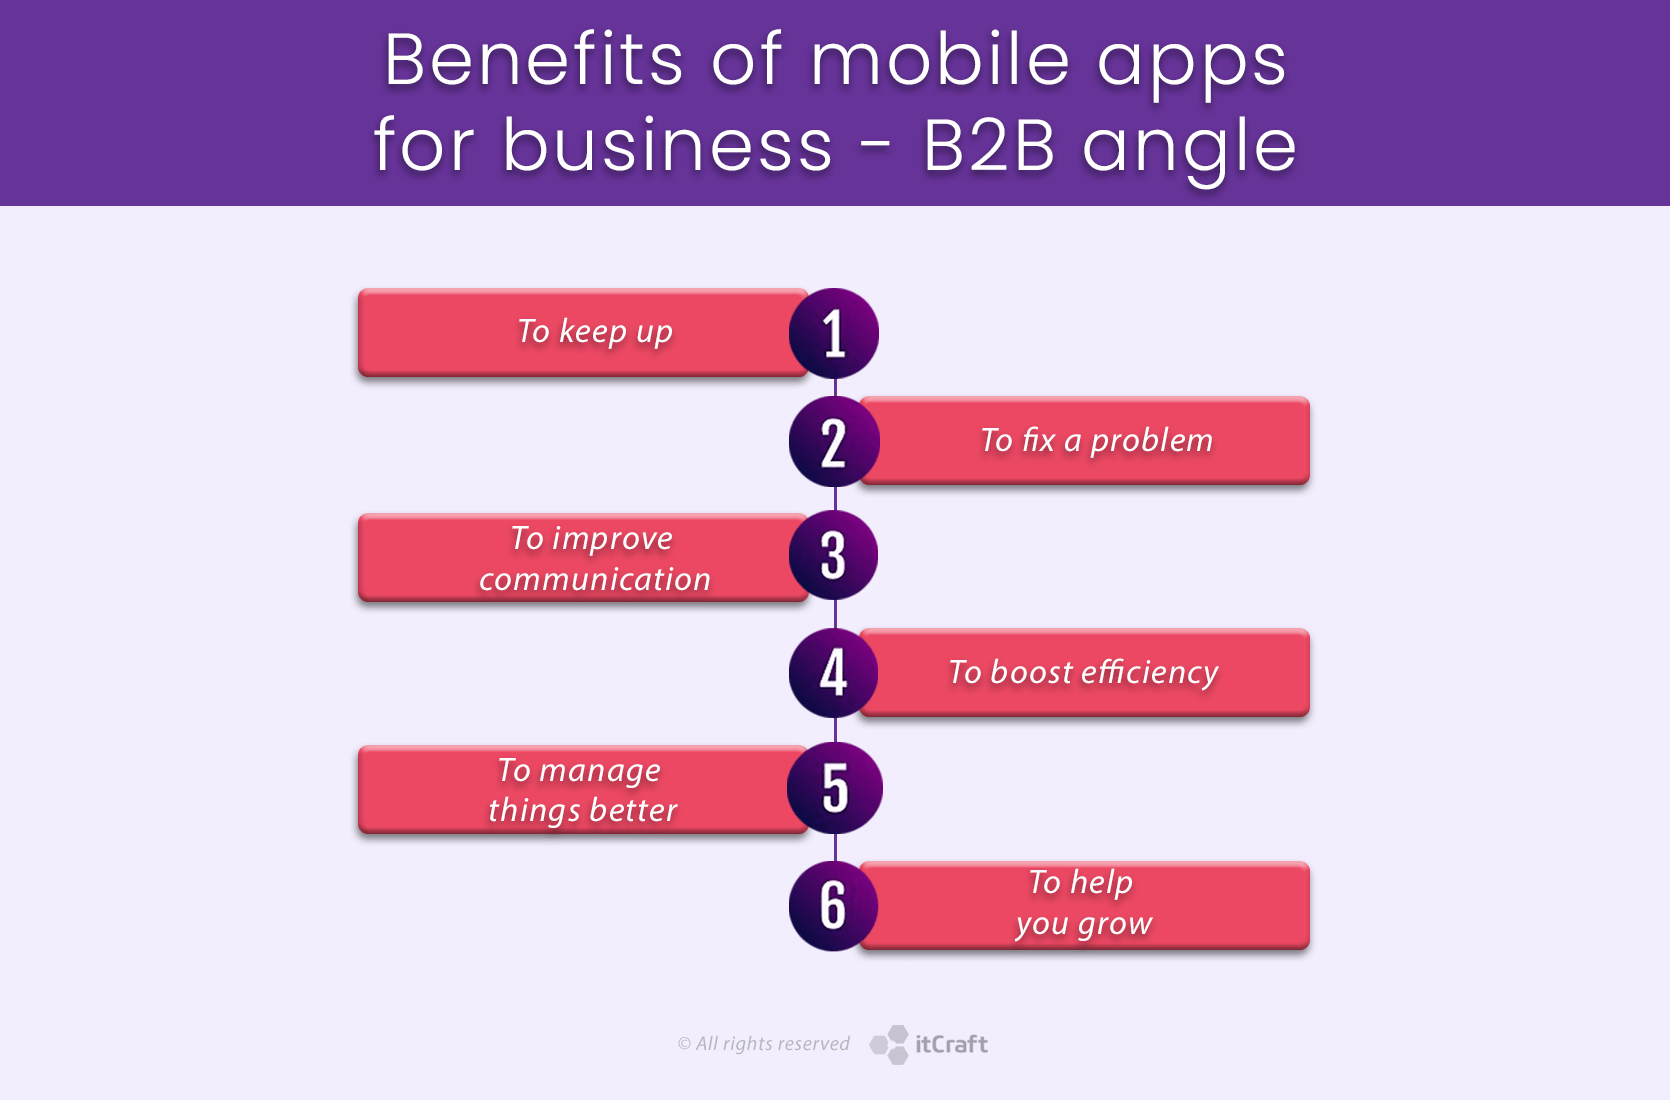 Benefits of mobile apps for business - B2B angle